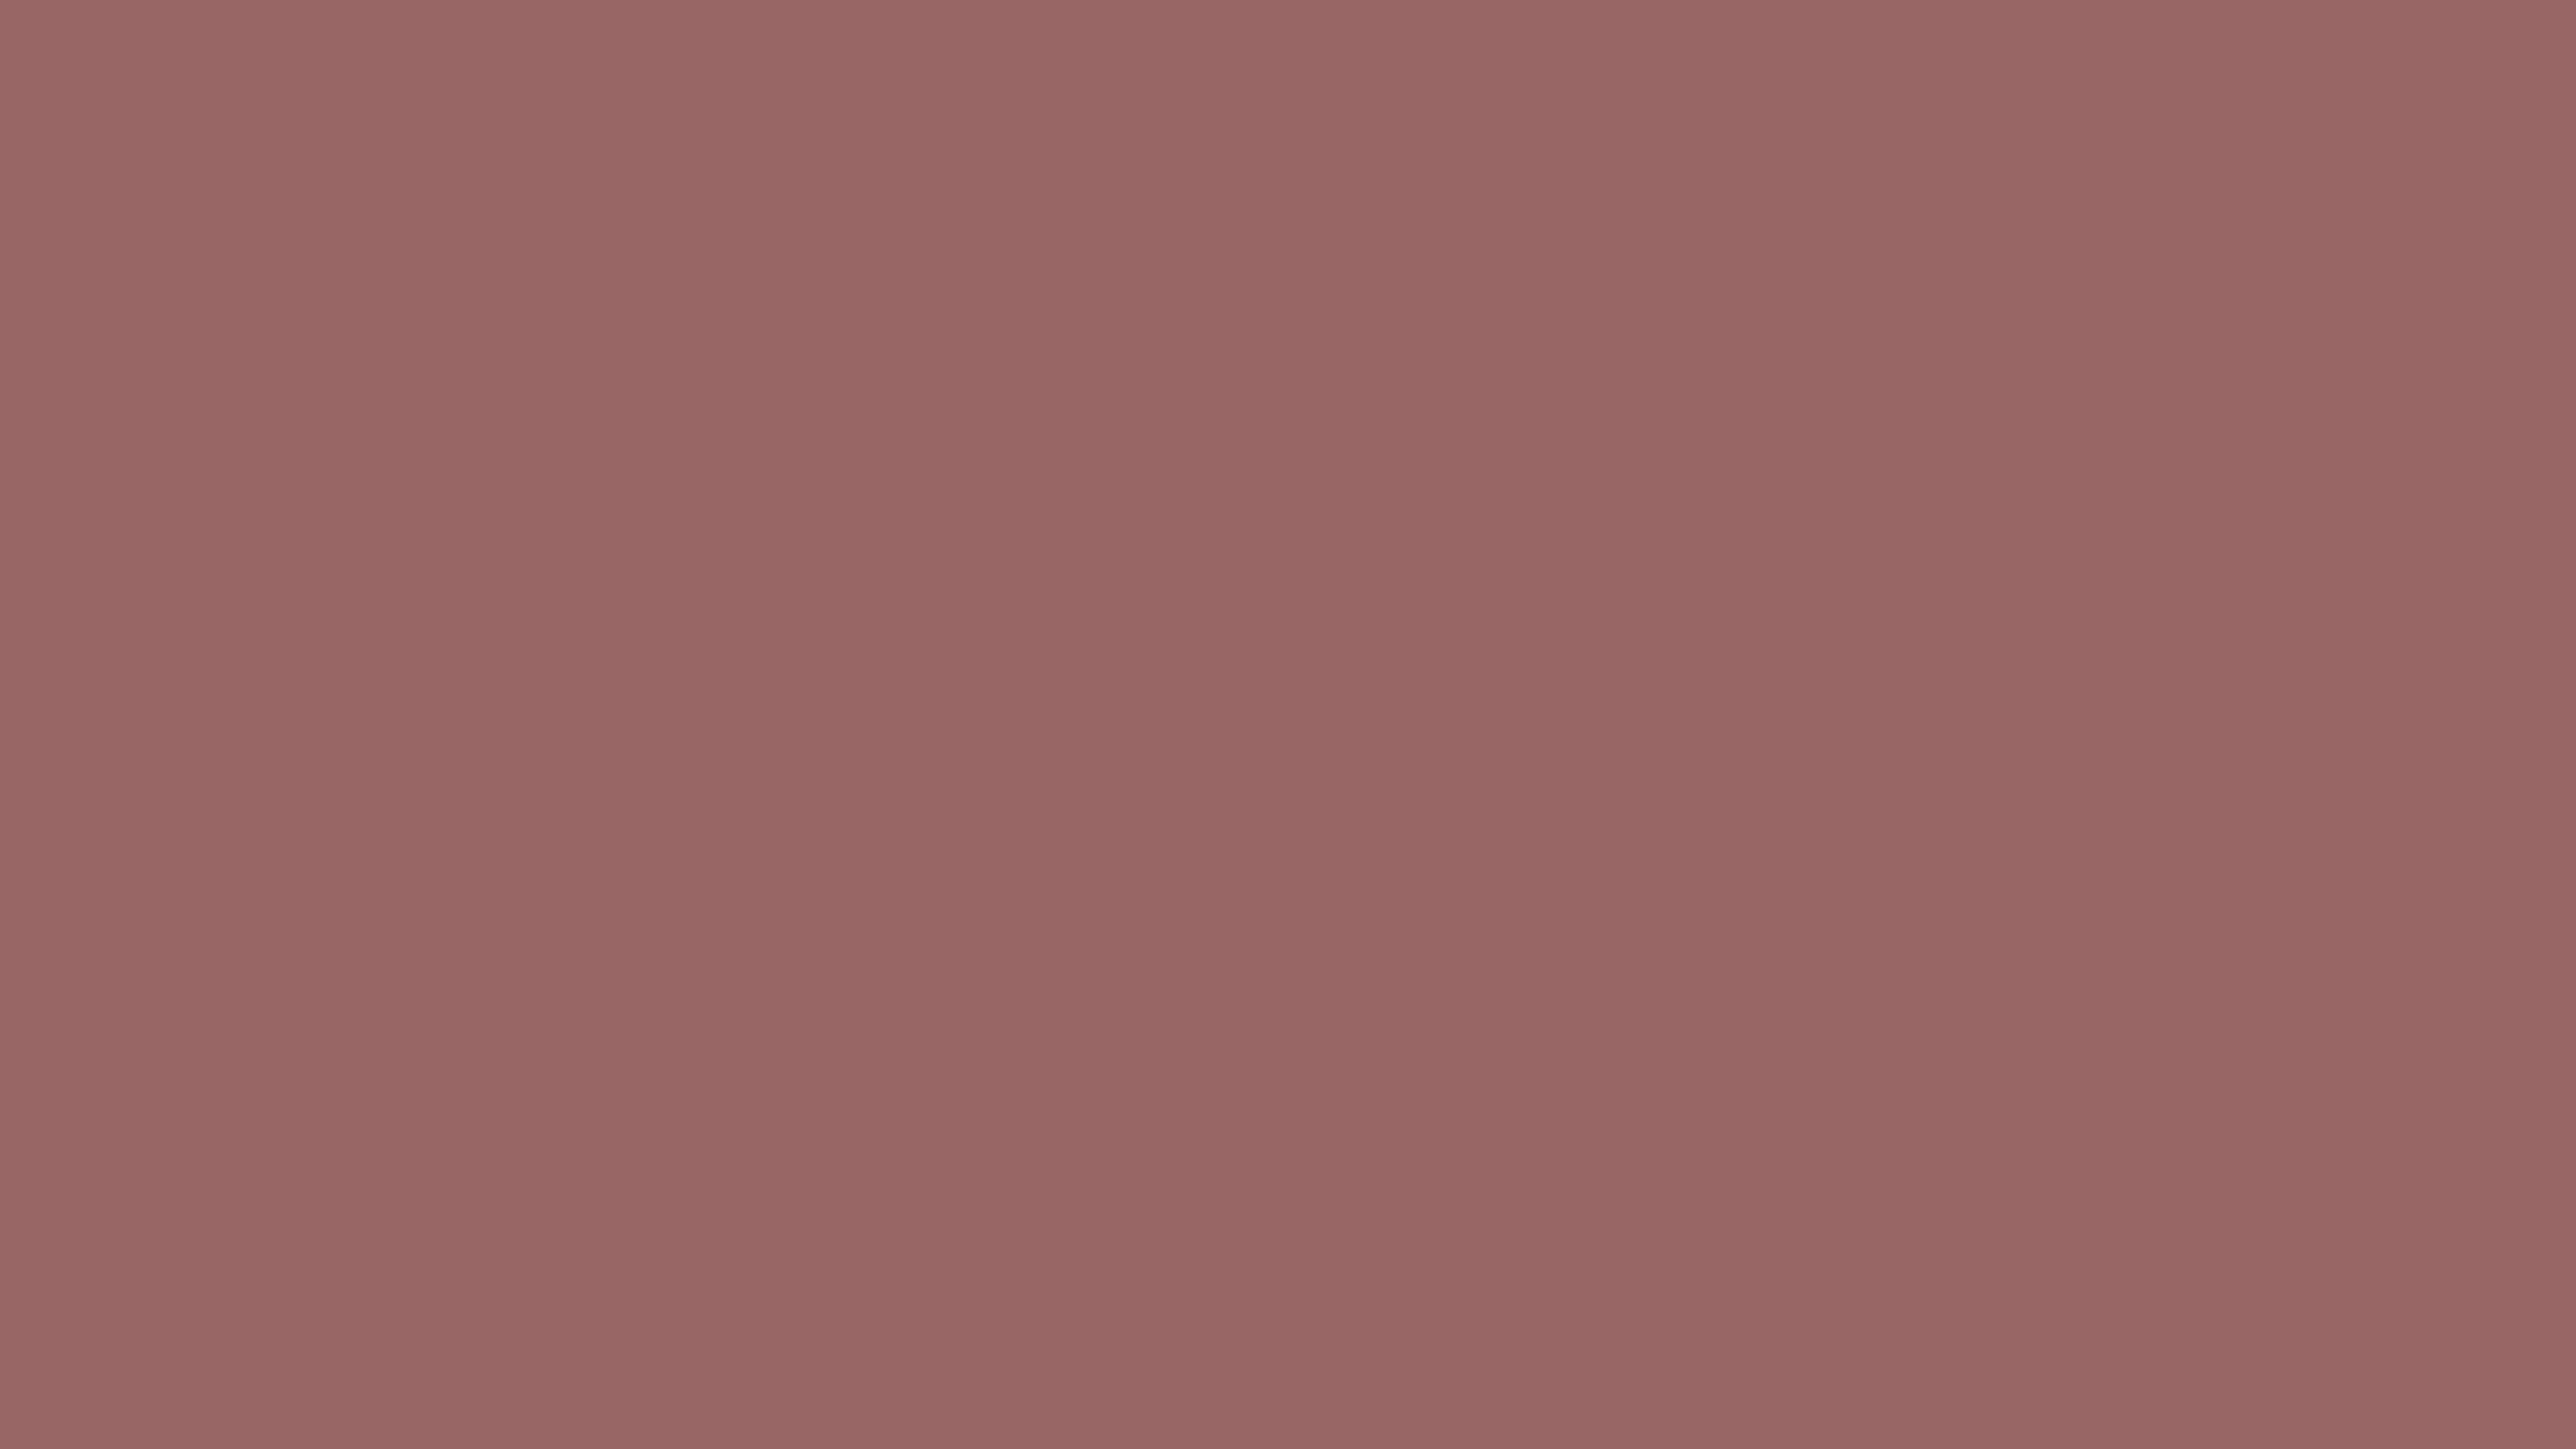 3840x2160 Copper Rose Solid Color Background